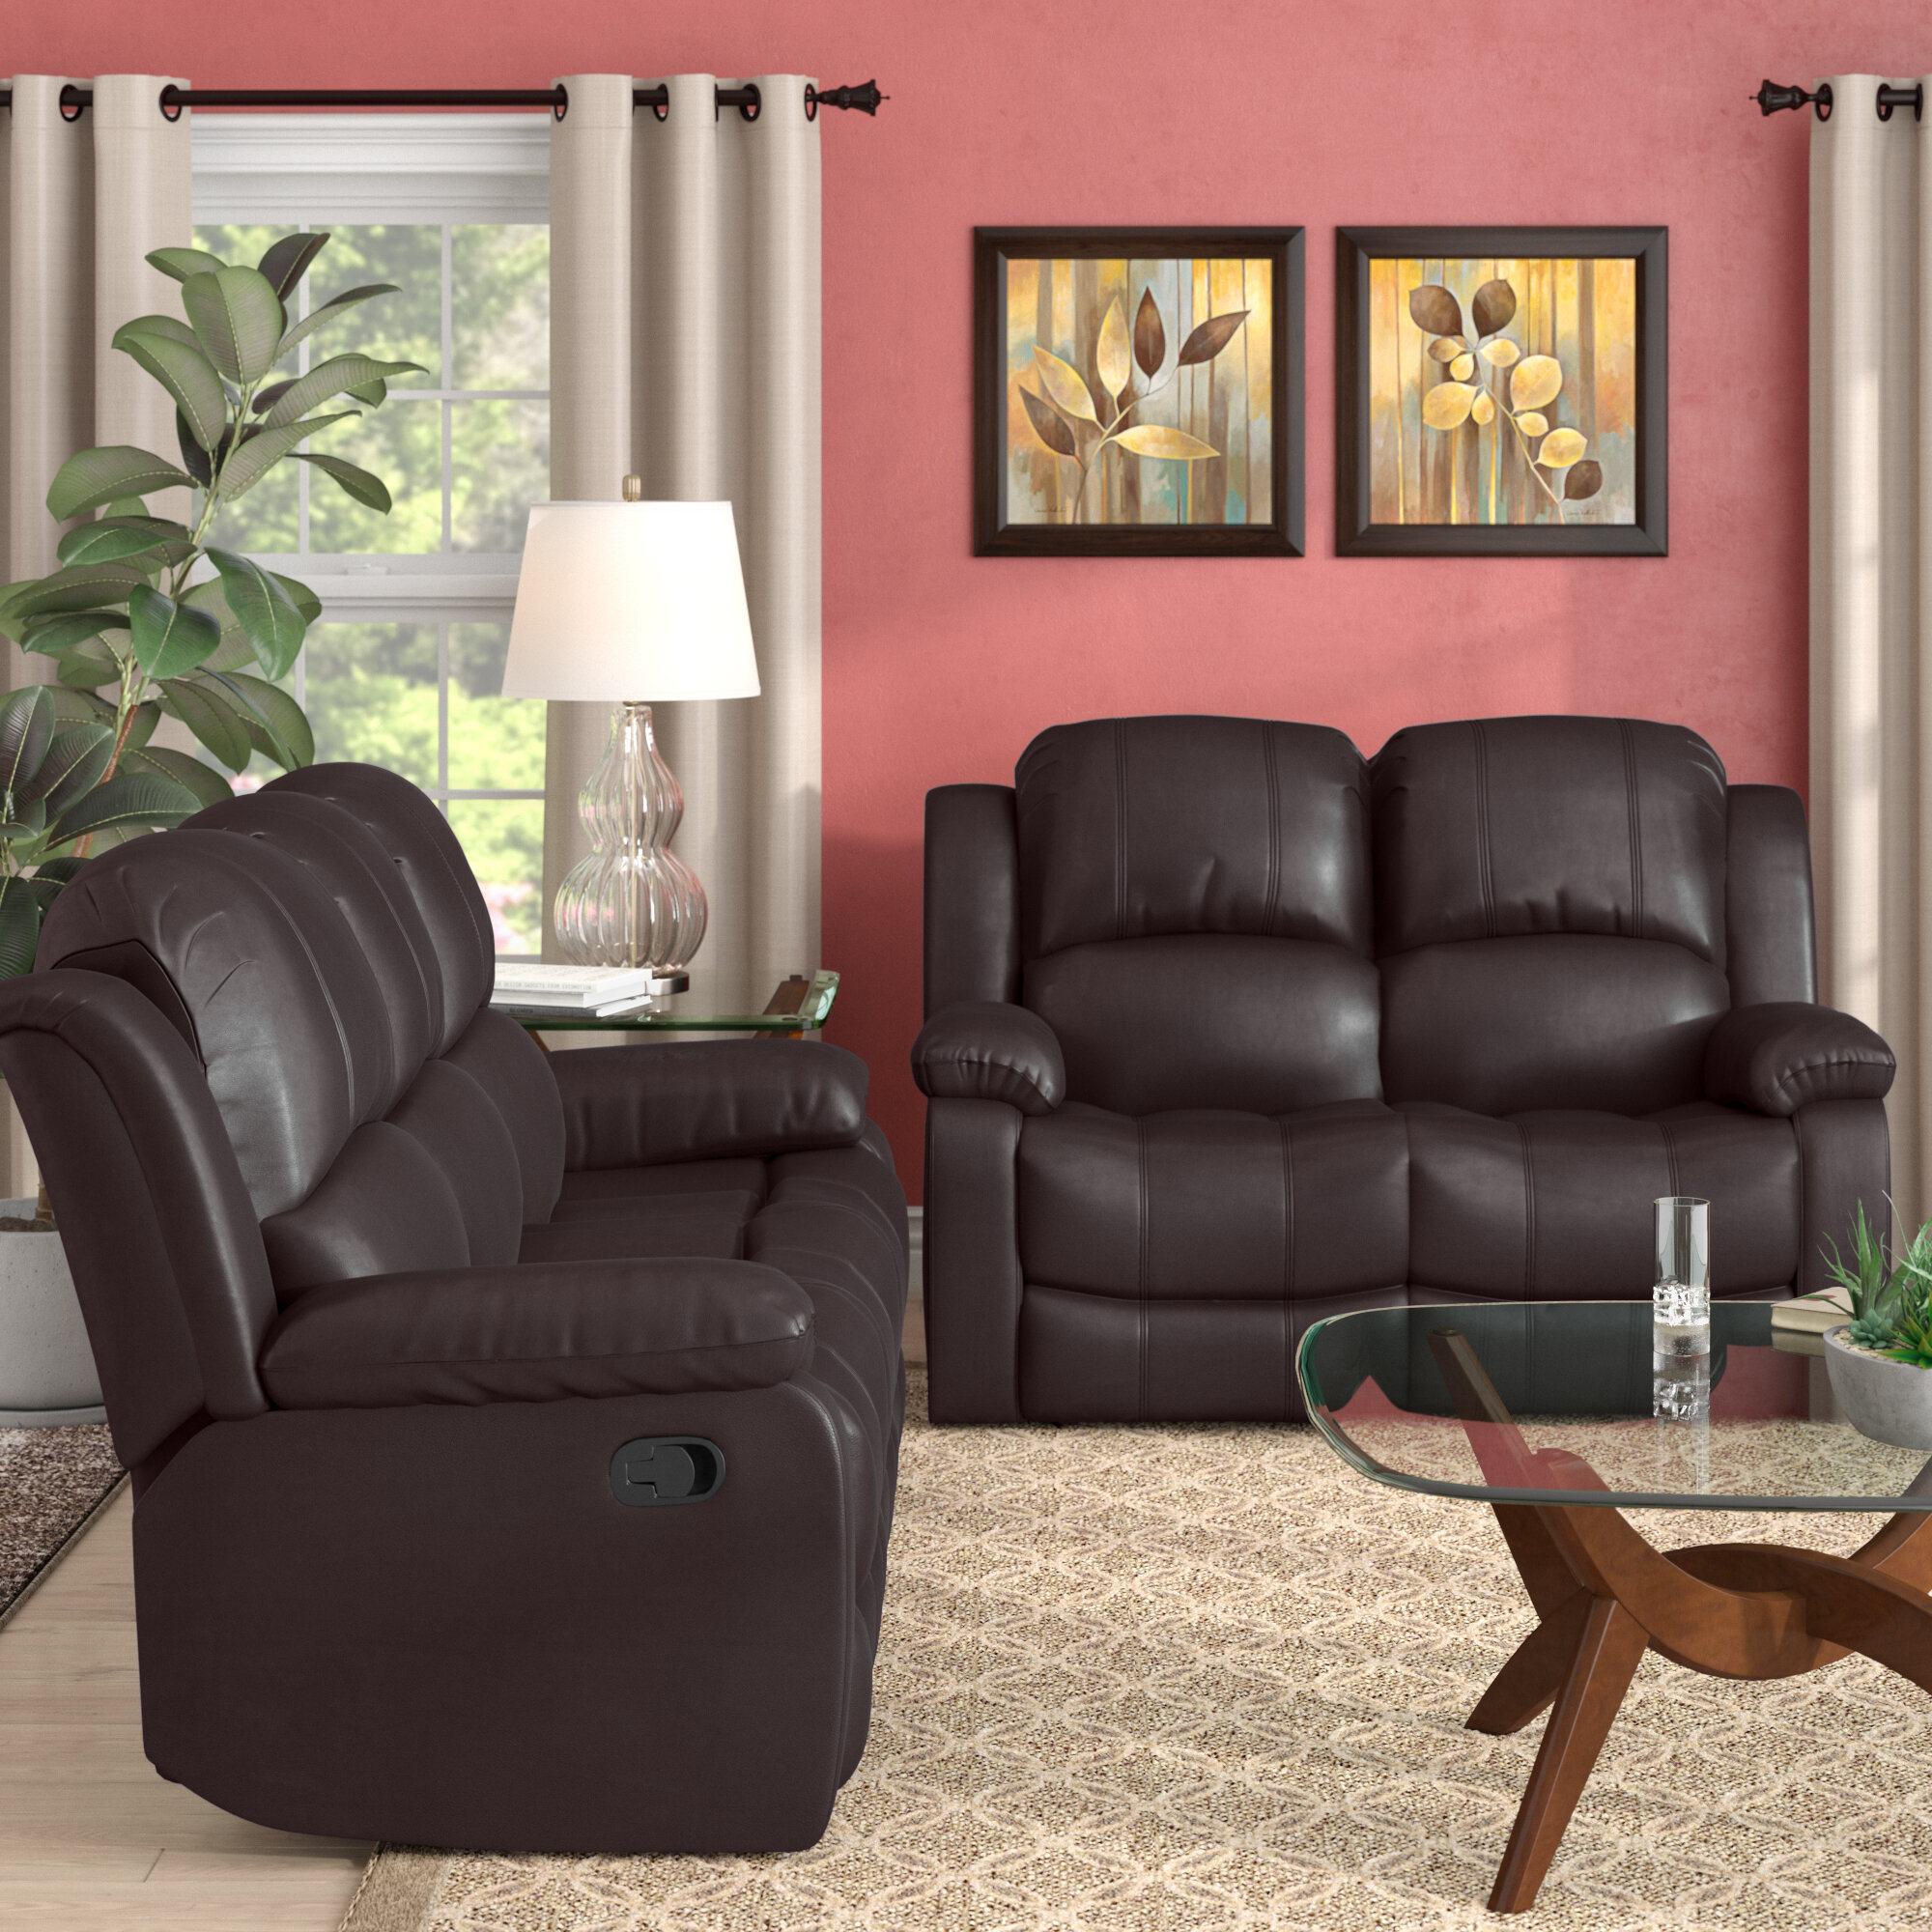 rubyscanlan couches custom modular with and style classic best accessories on spaces living sofa pinterest furniture brown dark room sectional recliner leather set images wonderful bassett